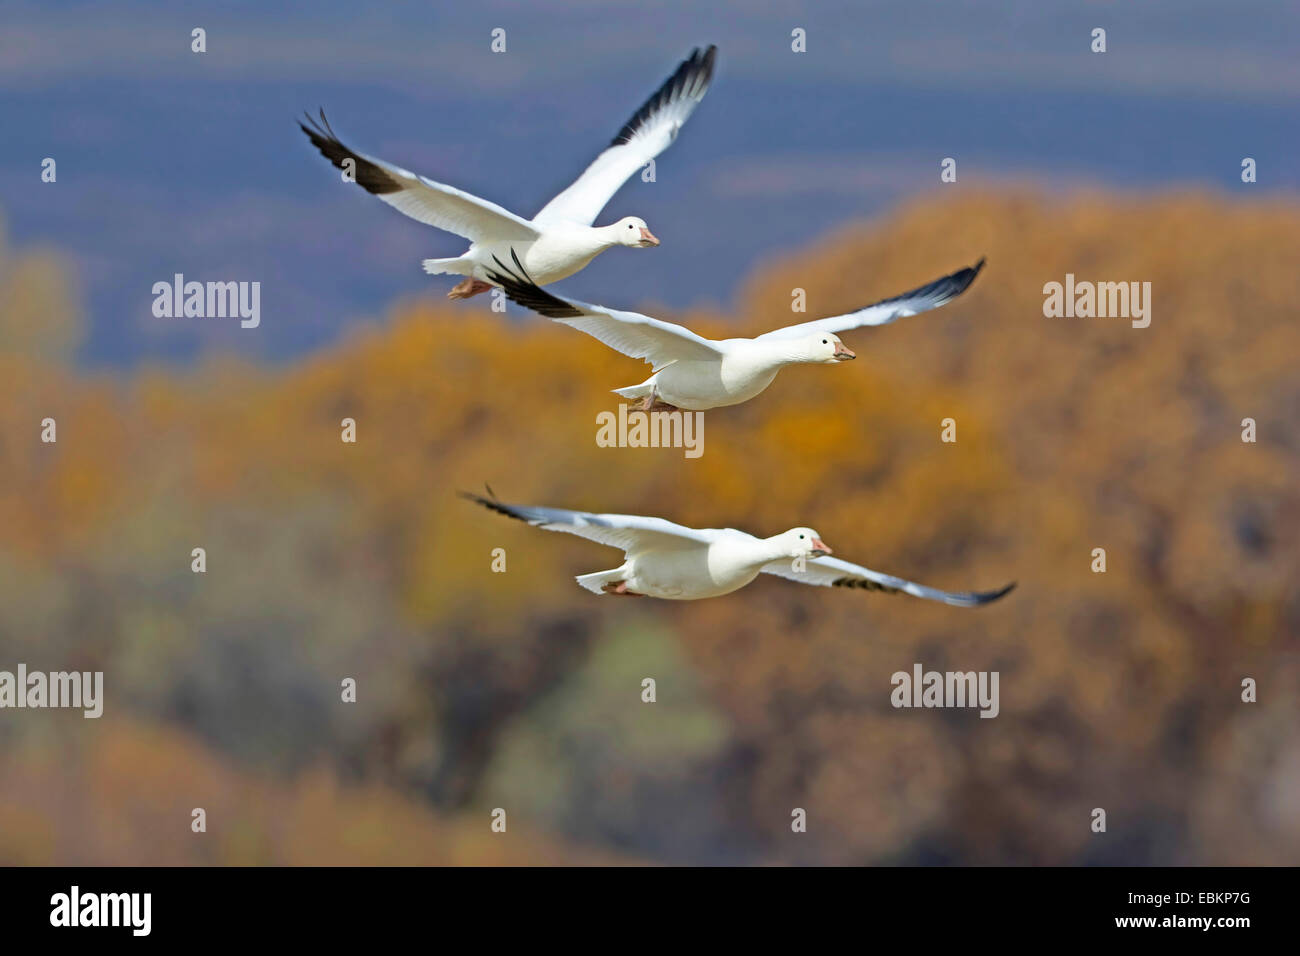 snow goose (Anser caerulescens atlanticus, Chen caerulescens atlanticus), flying, USA, New Mexico, Bosque del Apache - Stock Image